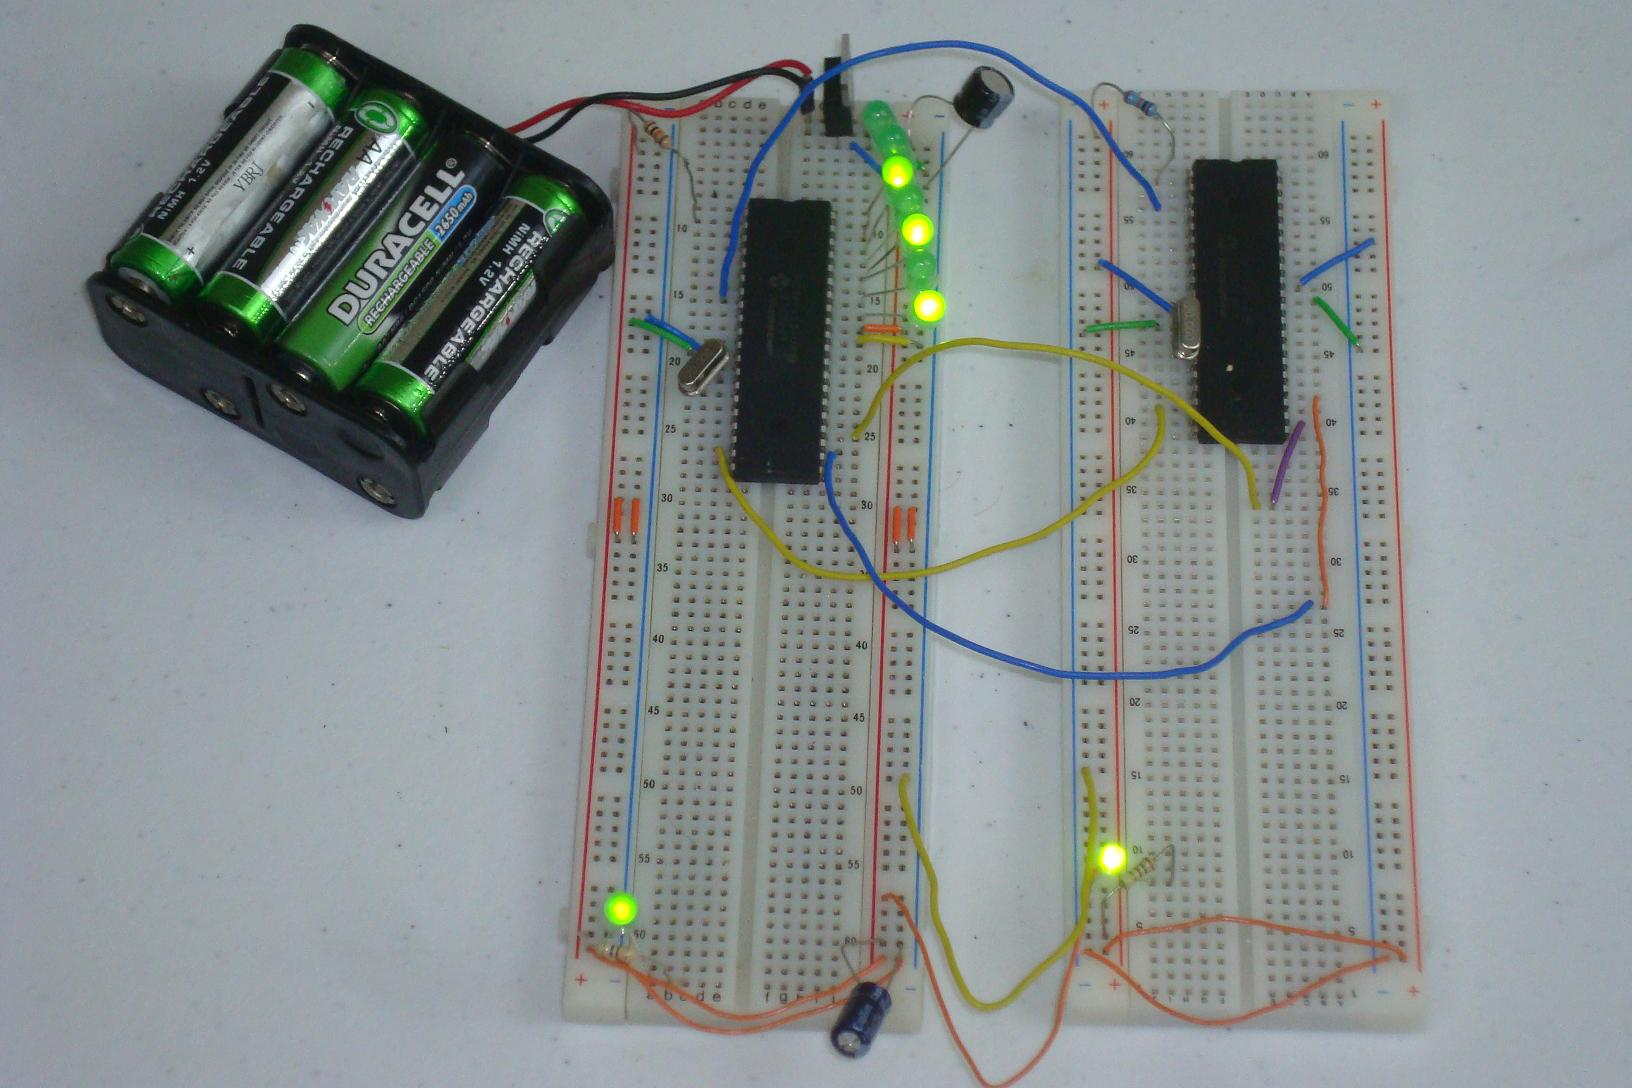 SPI Master / SPI Slave via PIC - Introduction | PyroElectro - News